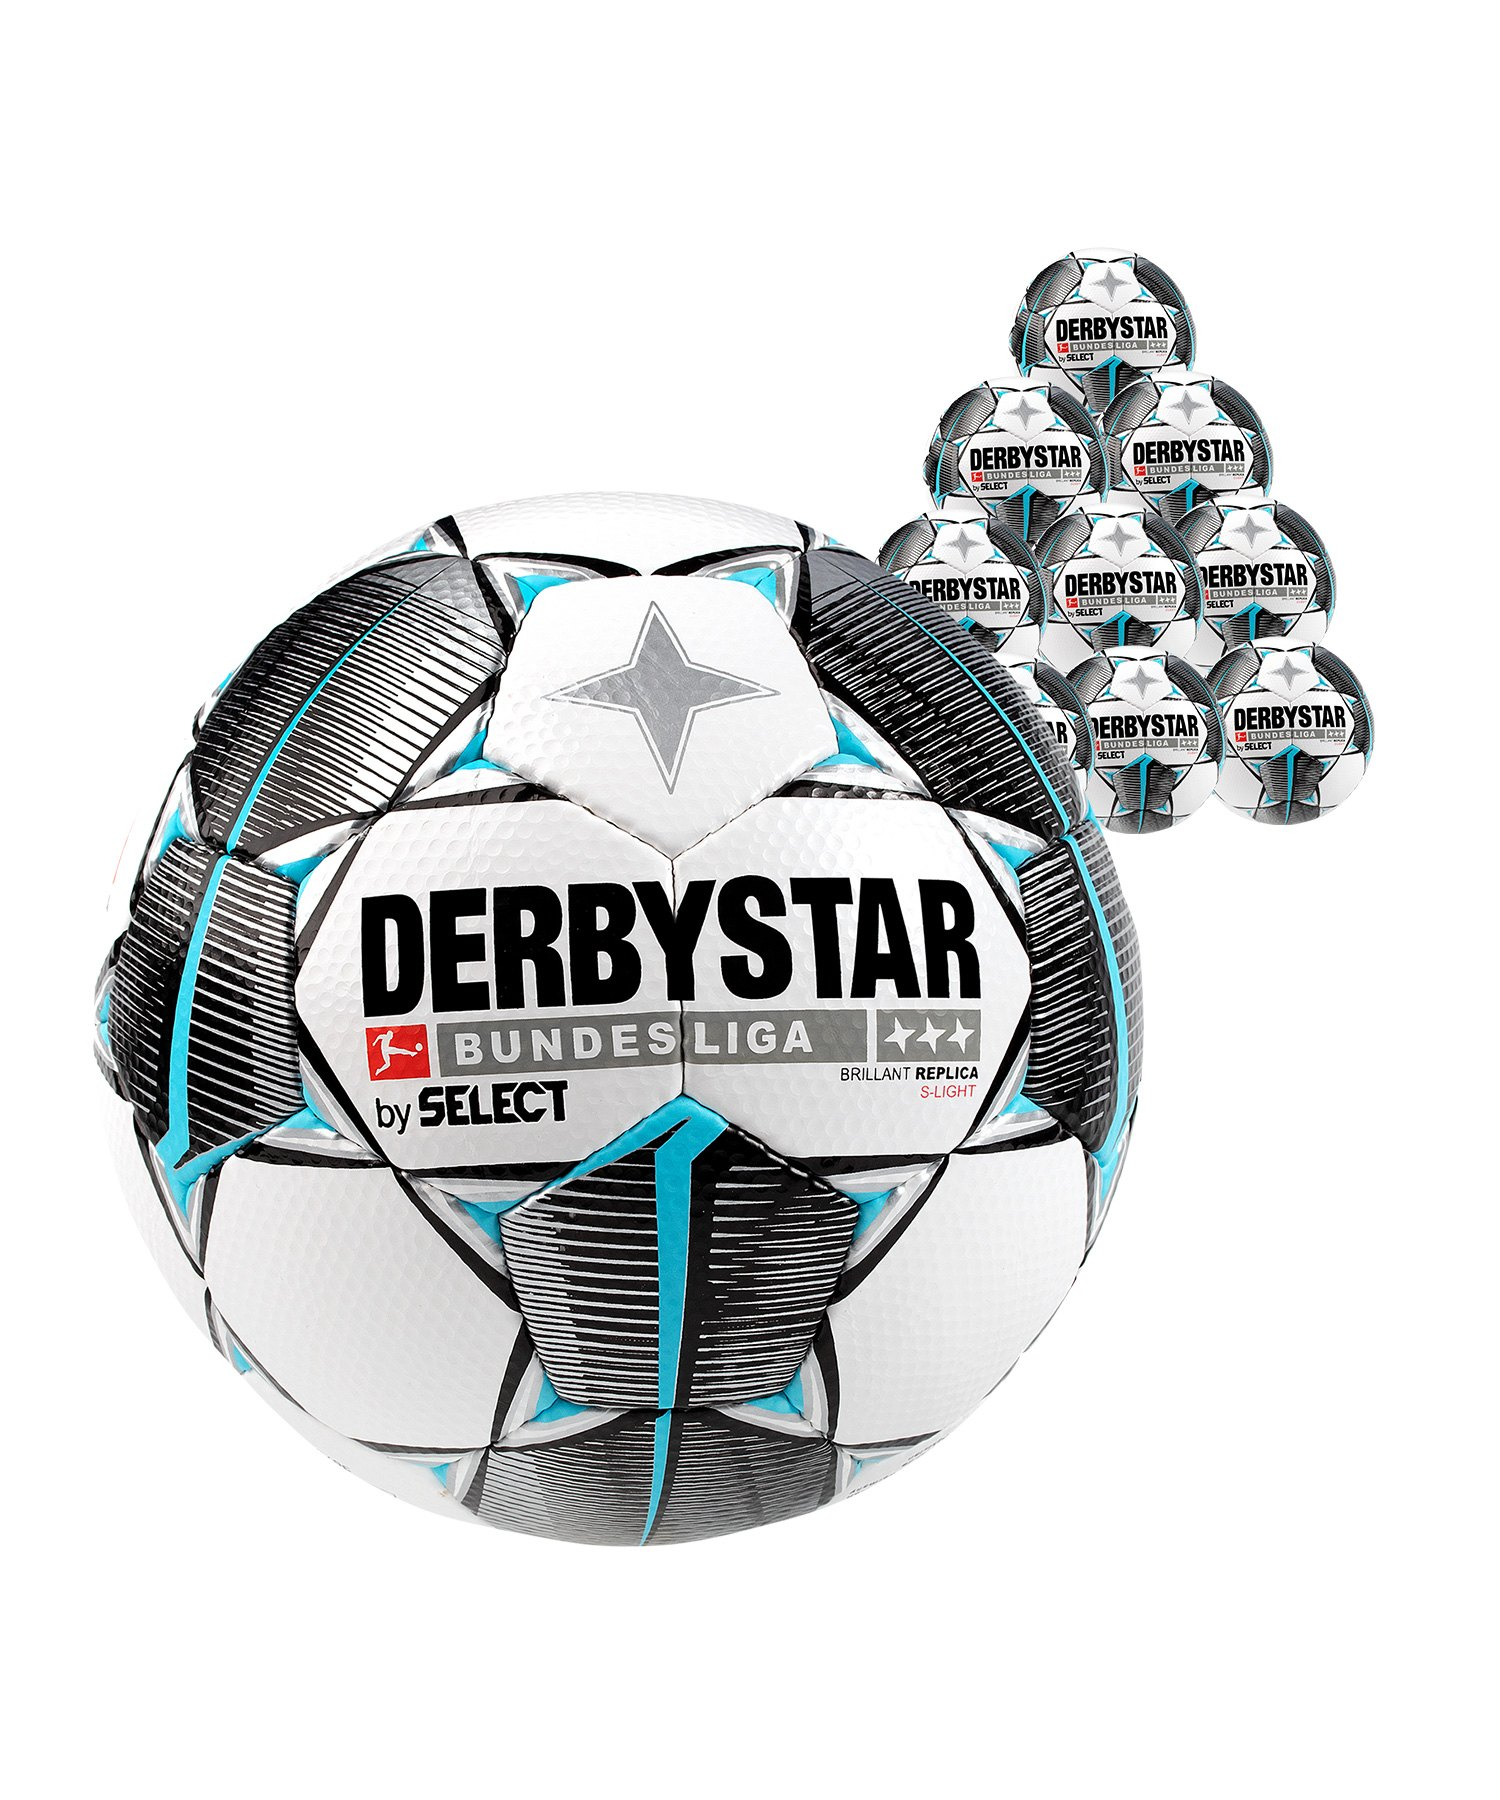 Derbystar Bundesliga Bril Replica S-Light 10x Gr.5 Weiss F019 - weiss